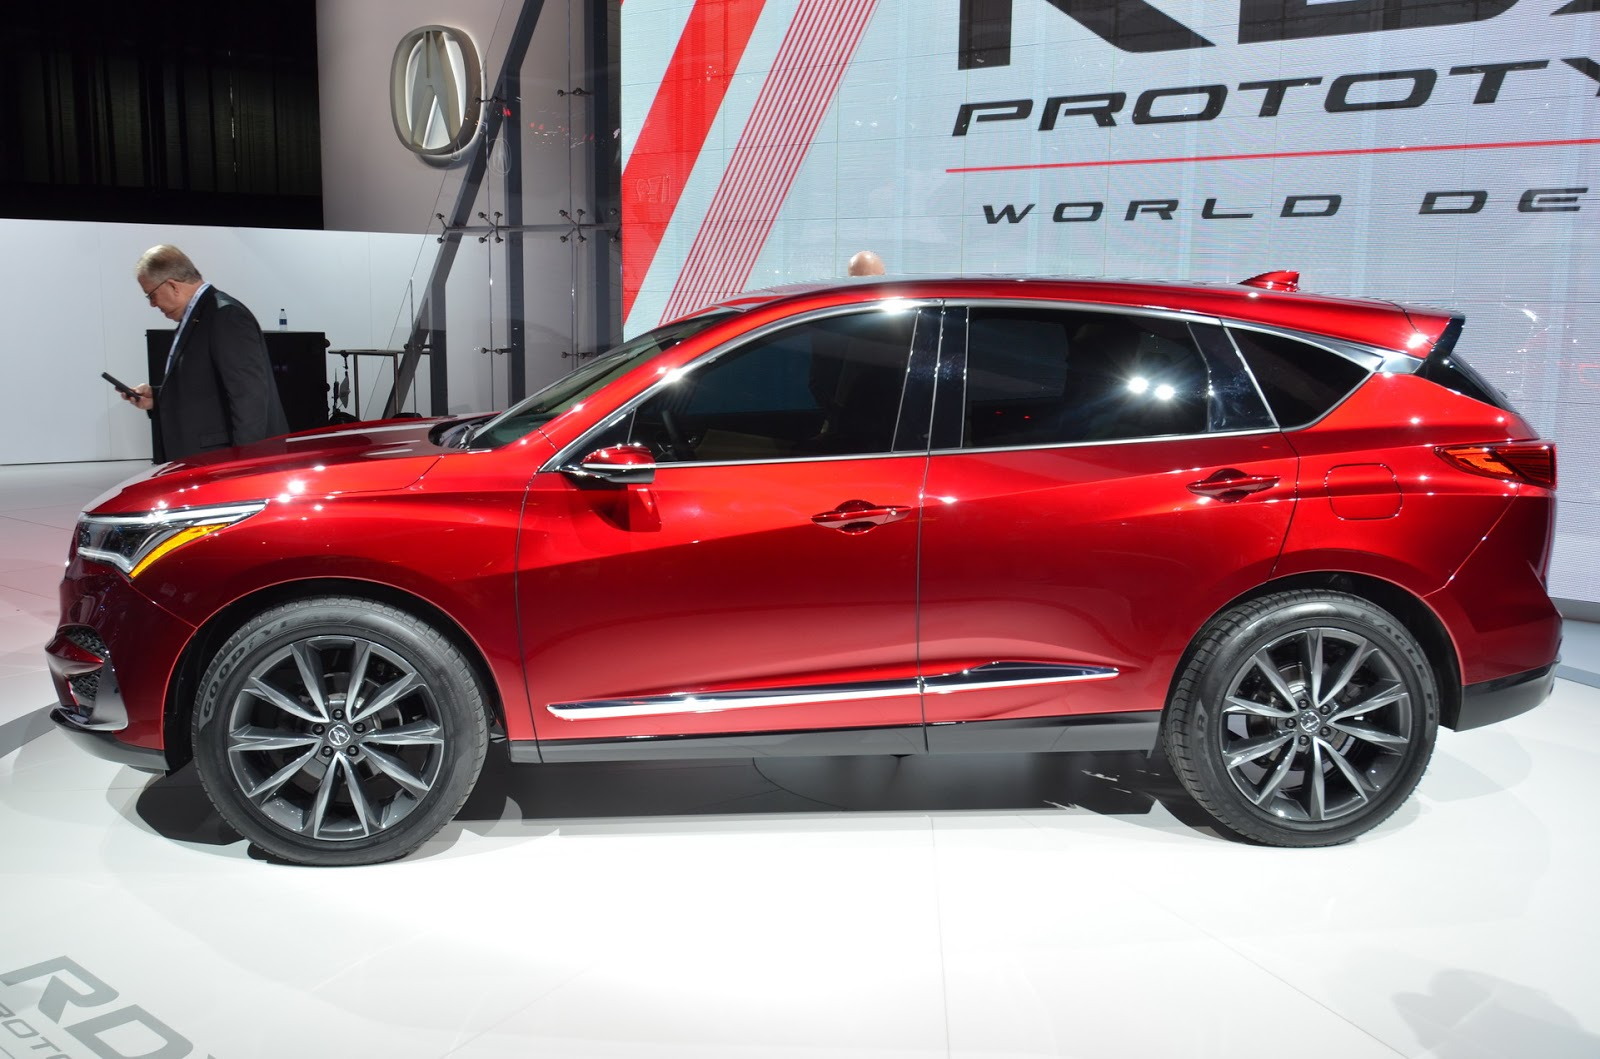 2019 Acura RDX Prototype (Almost) Ready For The Road